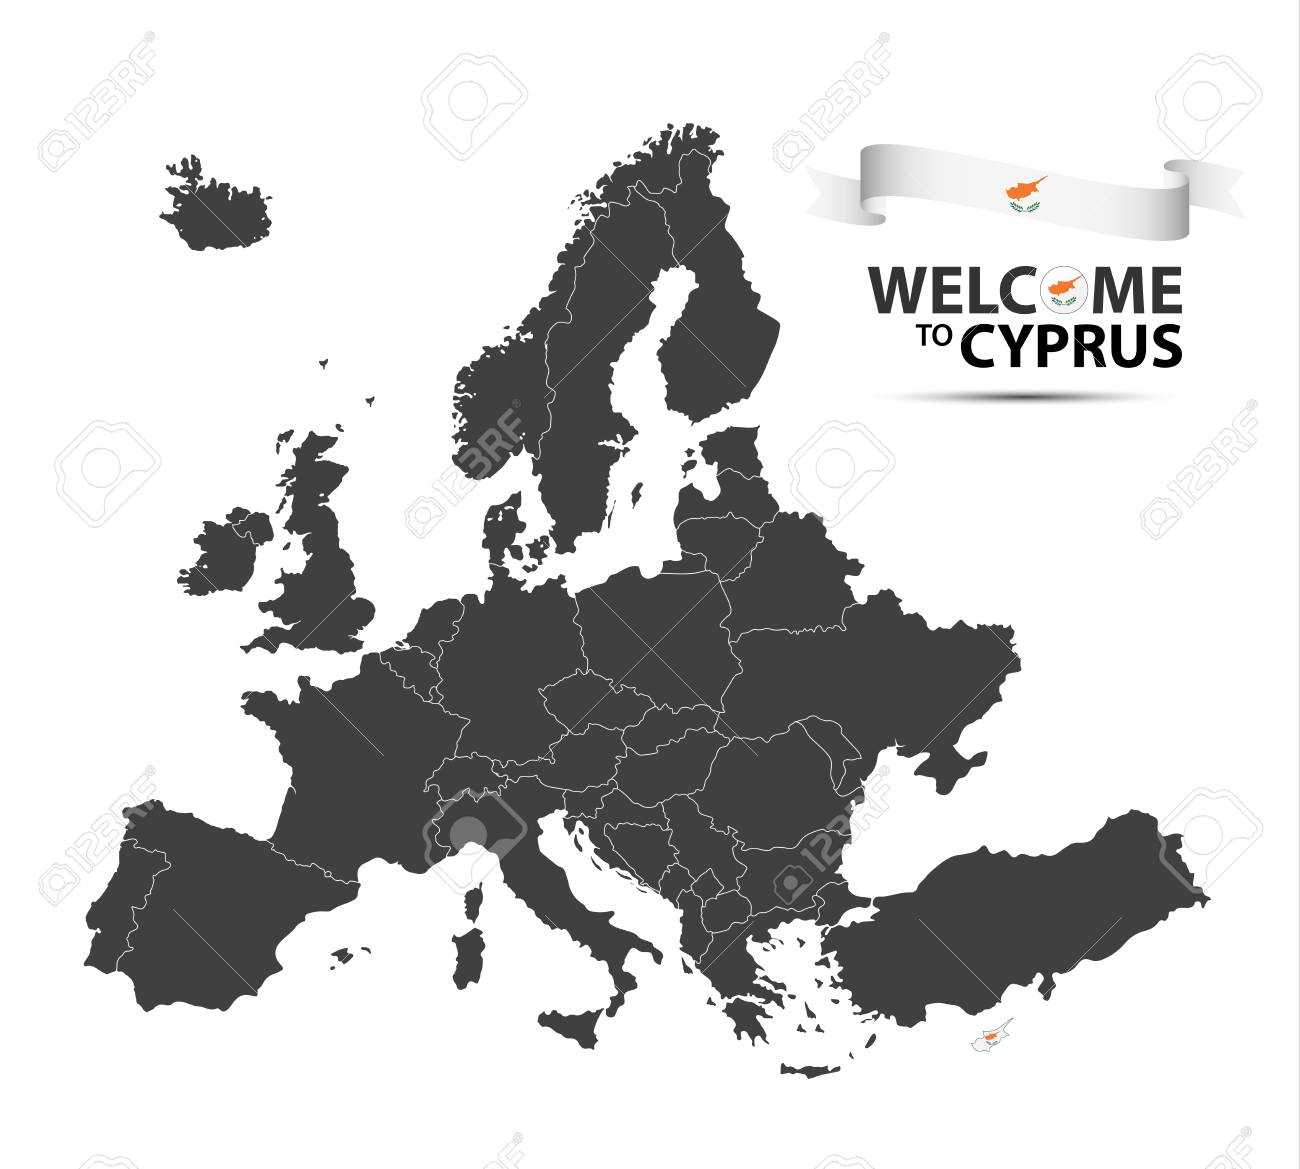 Vector Illustration Of A Map Of Europe With The State Of Cyprus